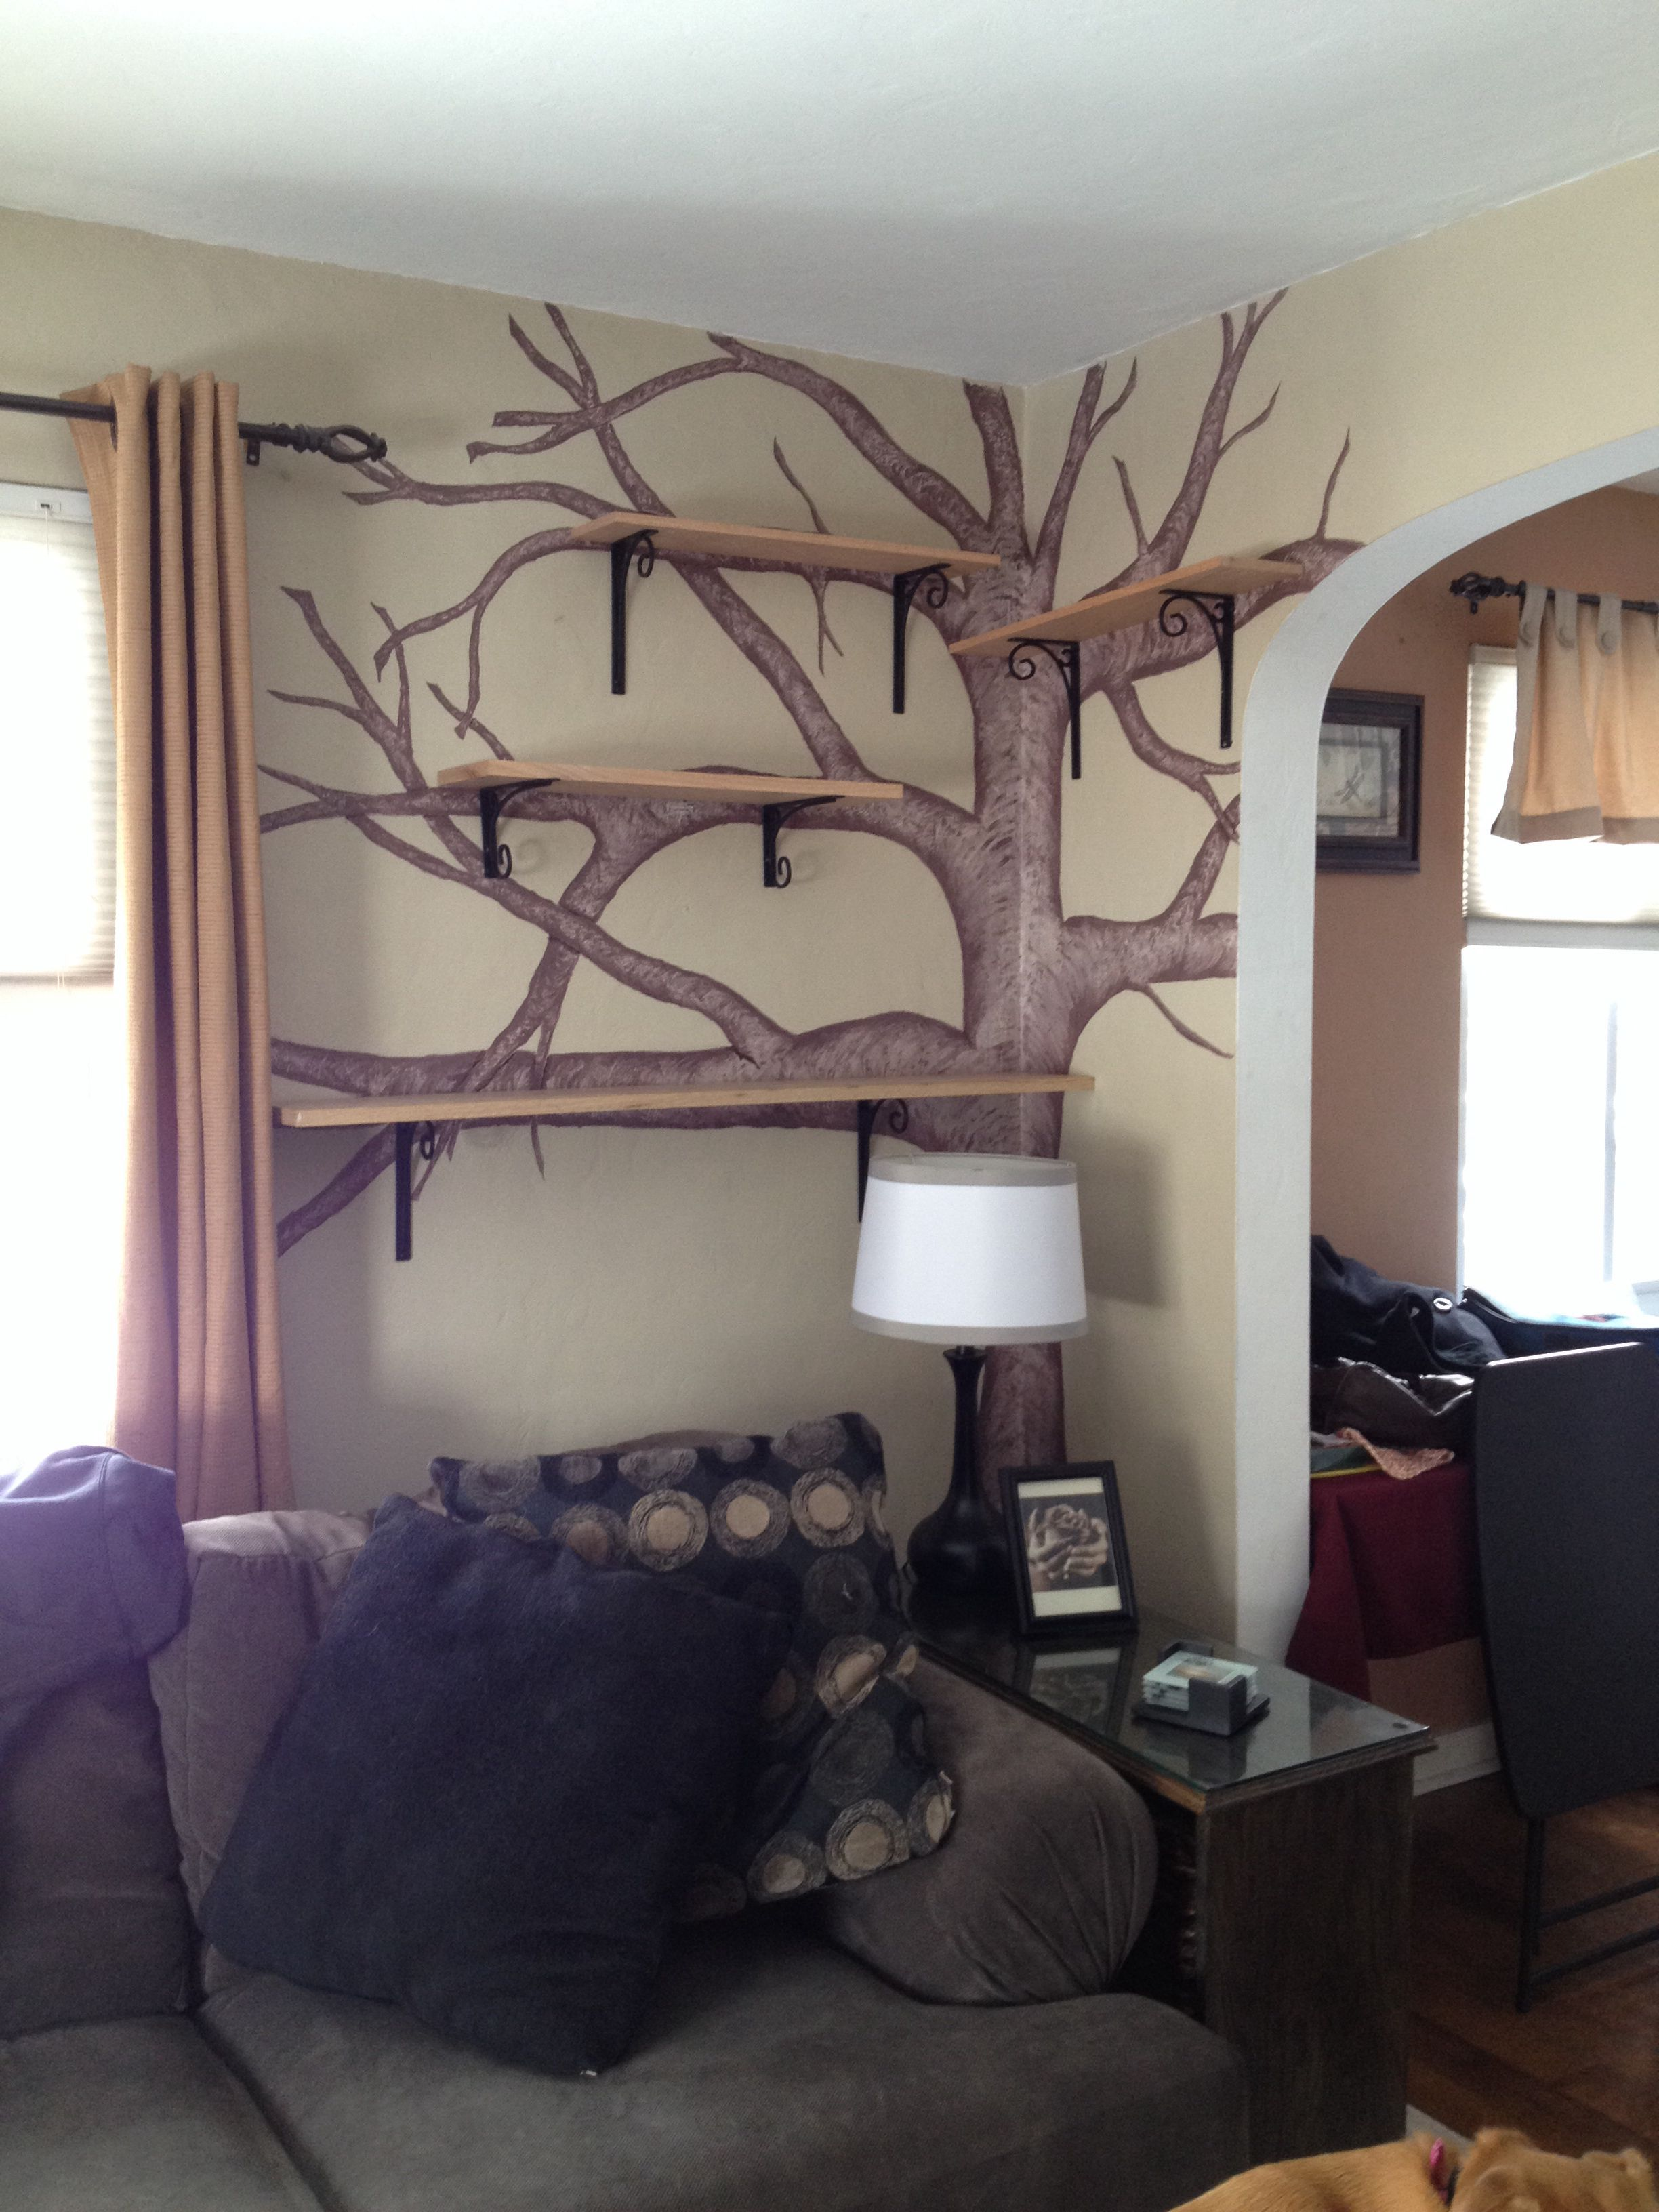 wall mounted cat furniture. AngelsBBTipperParker On. Diy Cat ShelvesCat Tree Wall Mounted Furniture